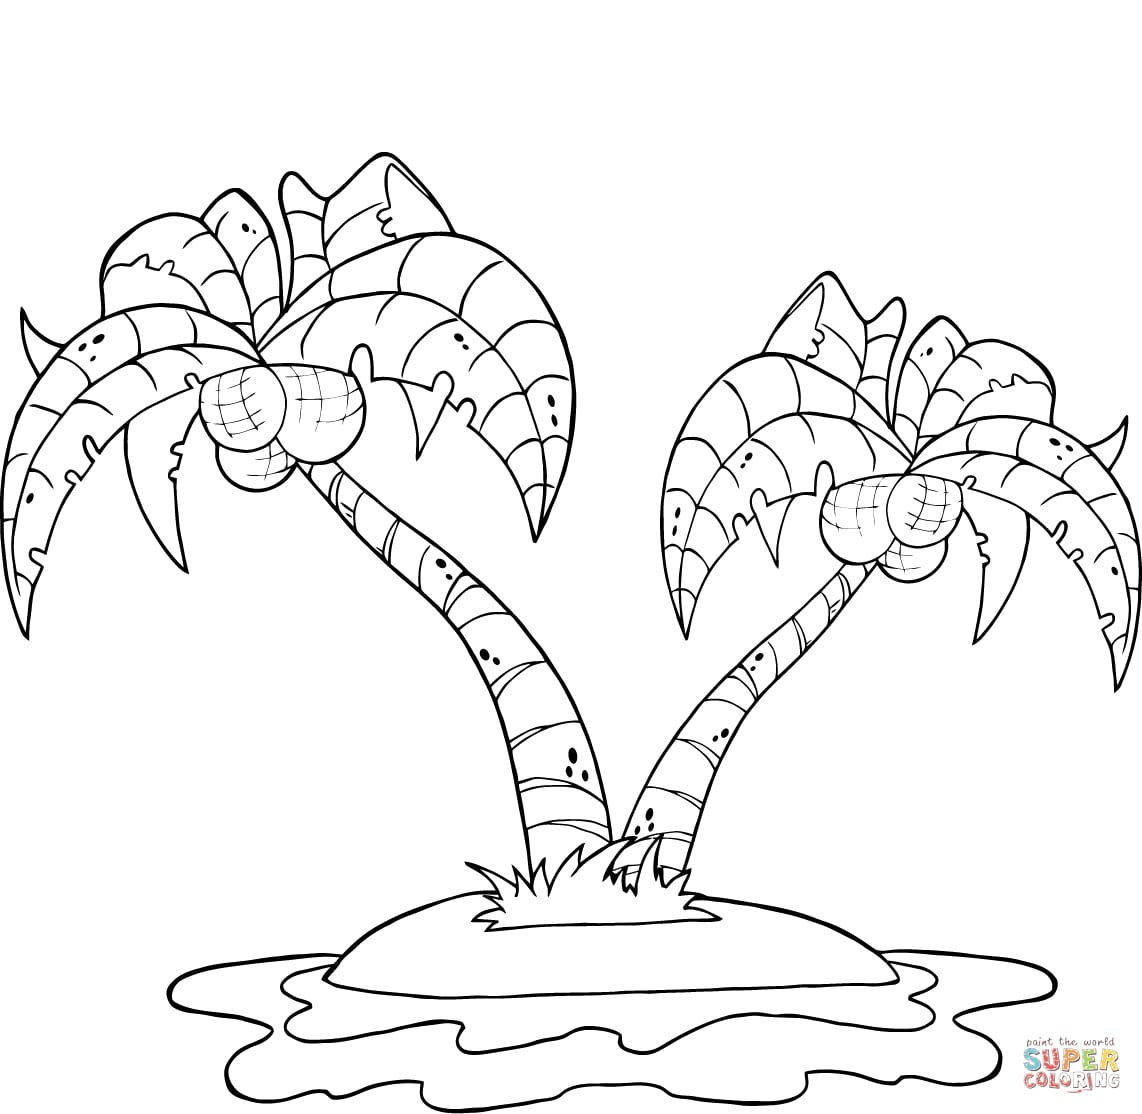 coconut tree coloring coconut tree drawing at getdrawings free download coloring coconut tree